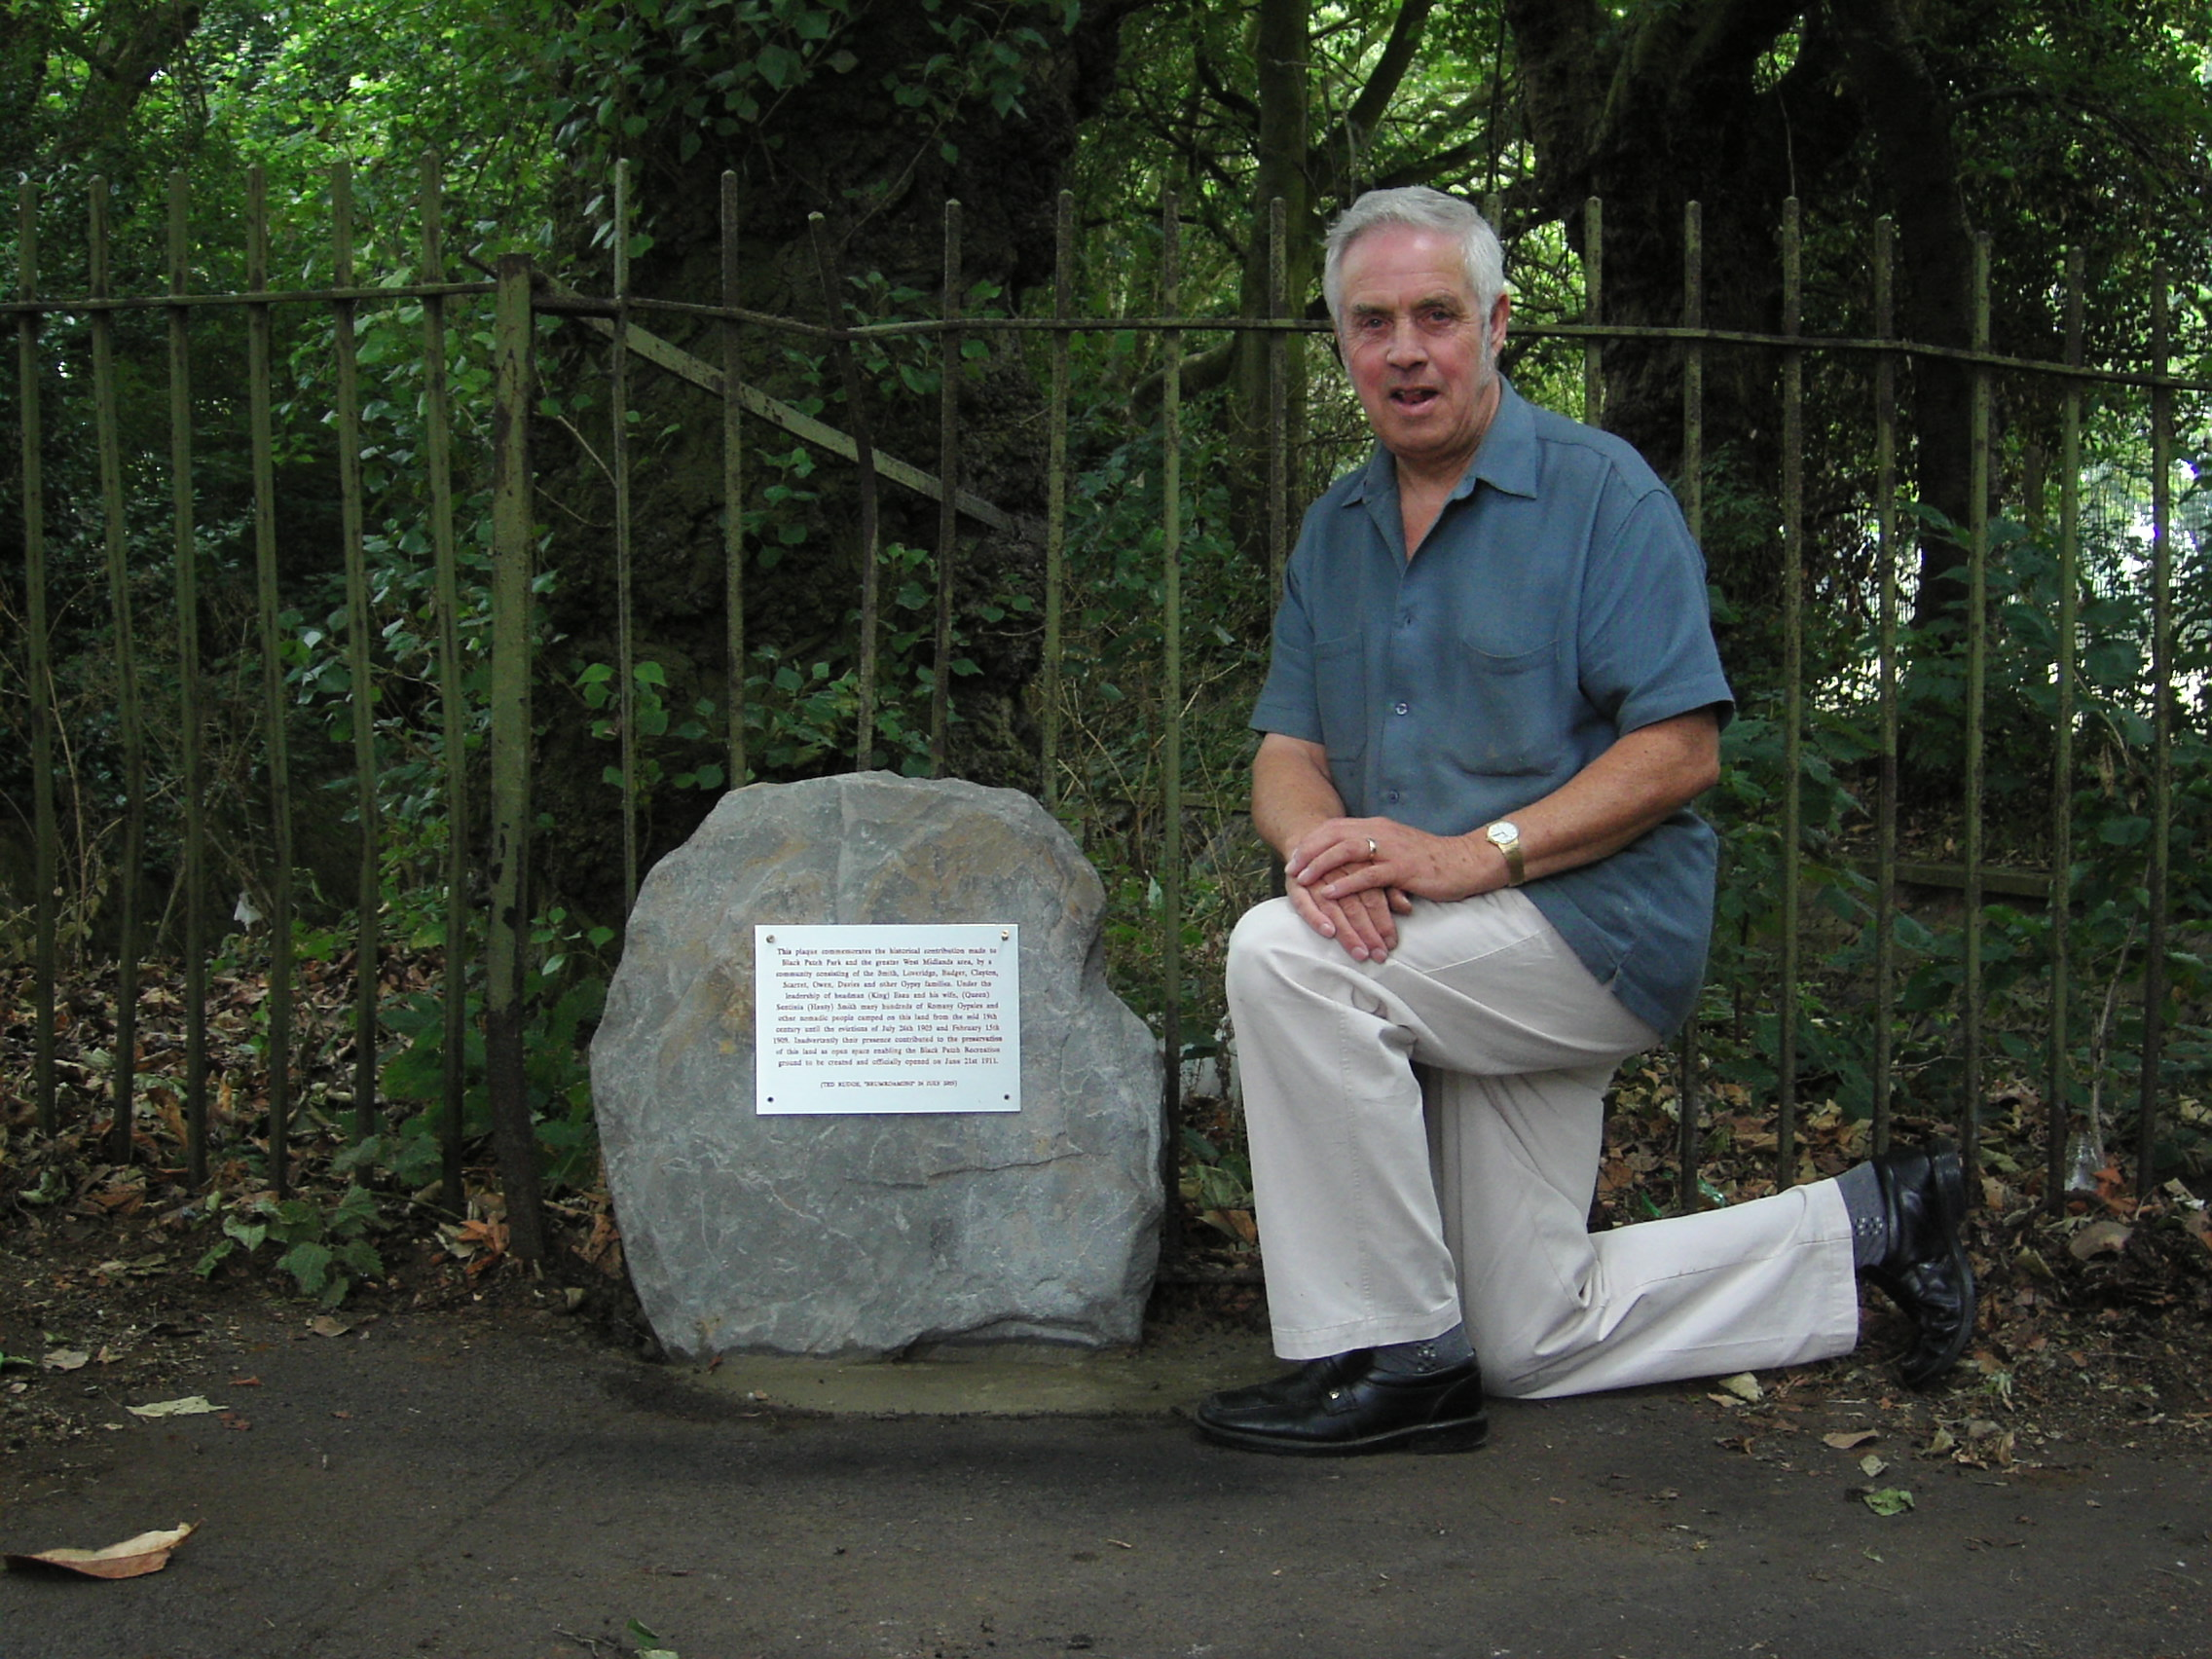 TED RUDGE AND THE NEWLY INSTALLED MEMORIAL STONE 23/07/2005